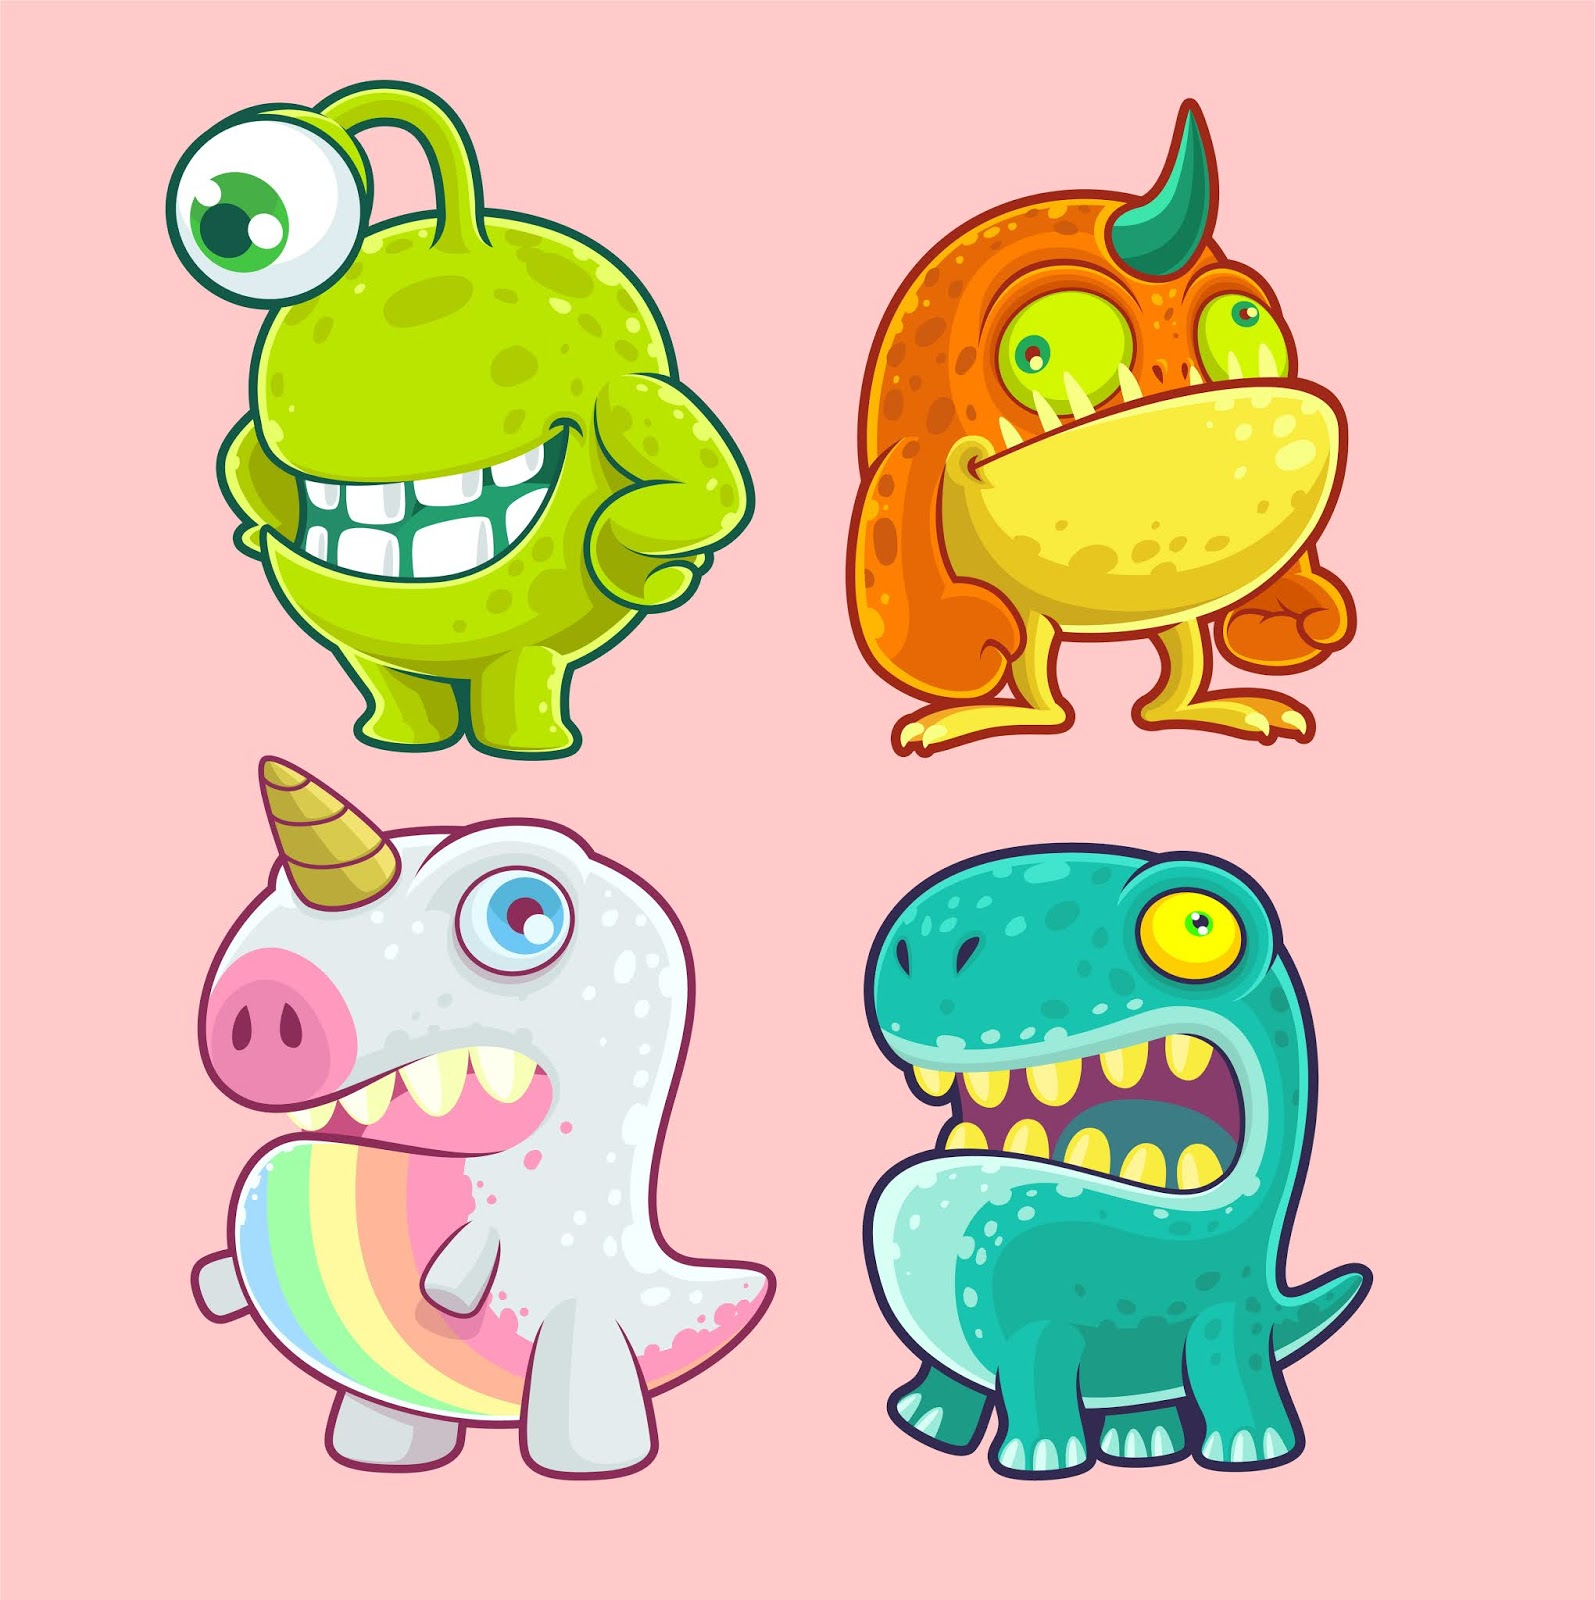 Cute Monster Character Set Free Download Vector CDR, AI, EPS and PNG Formats